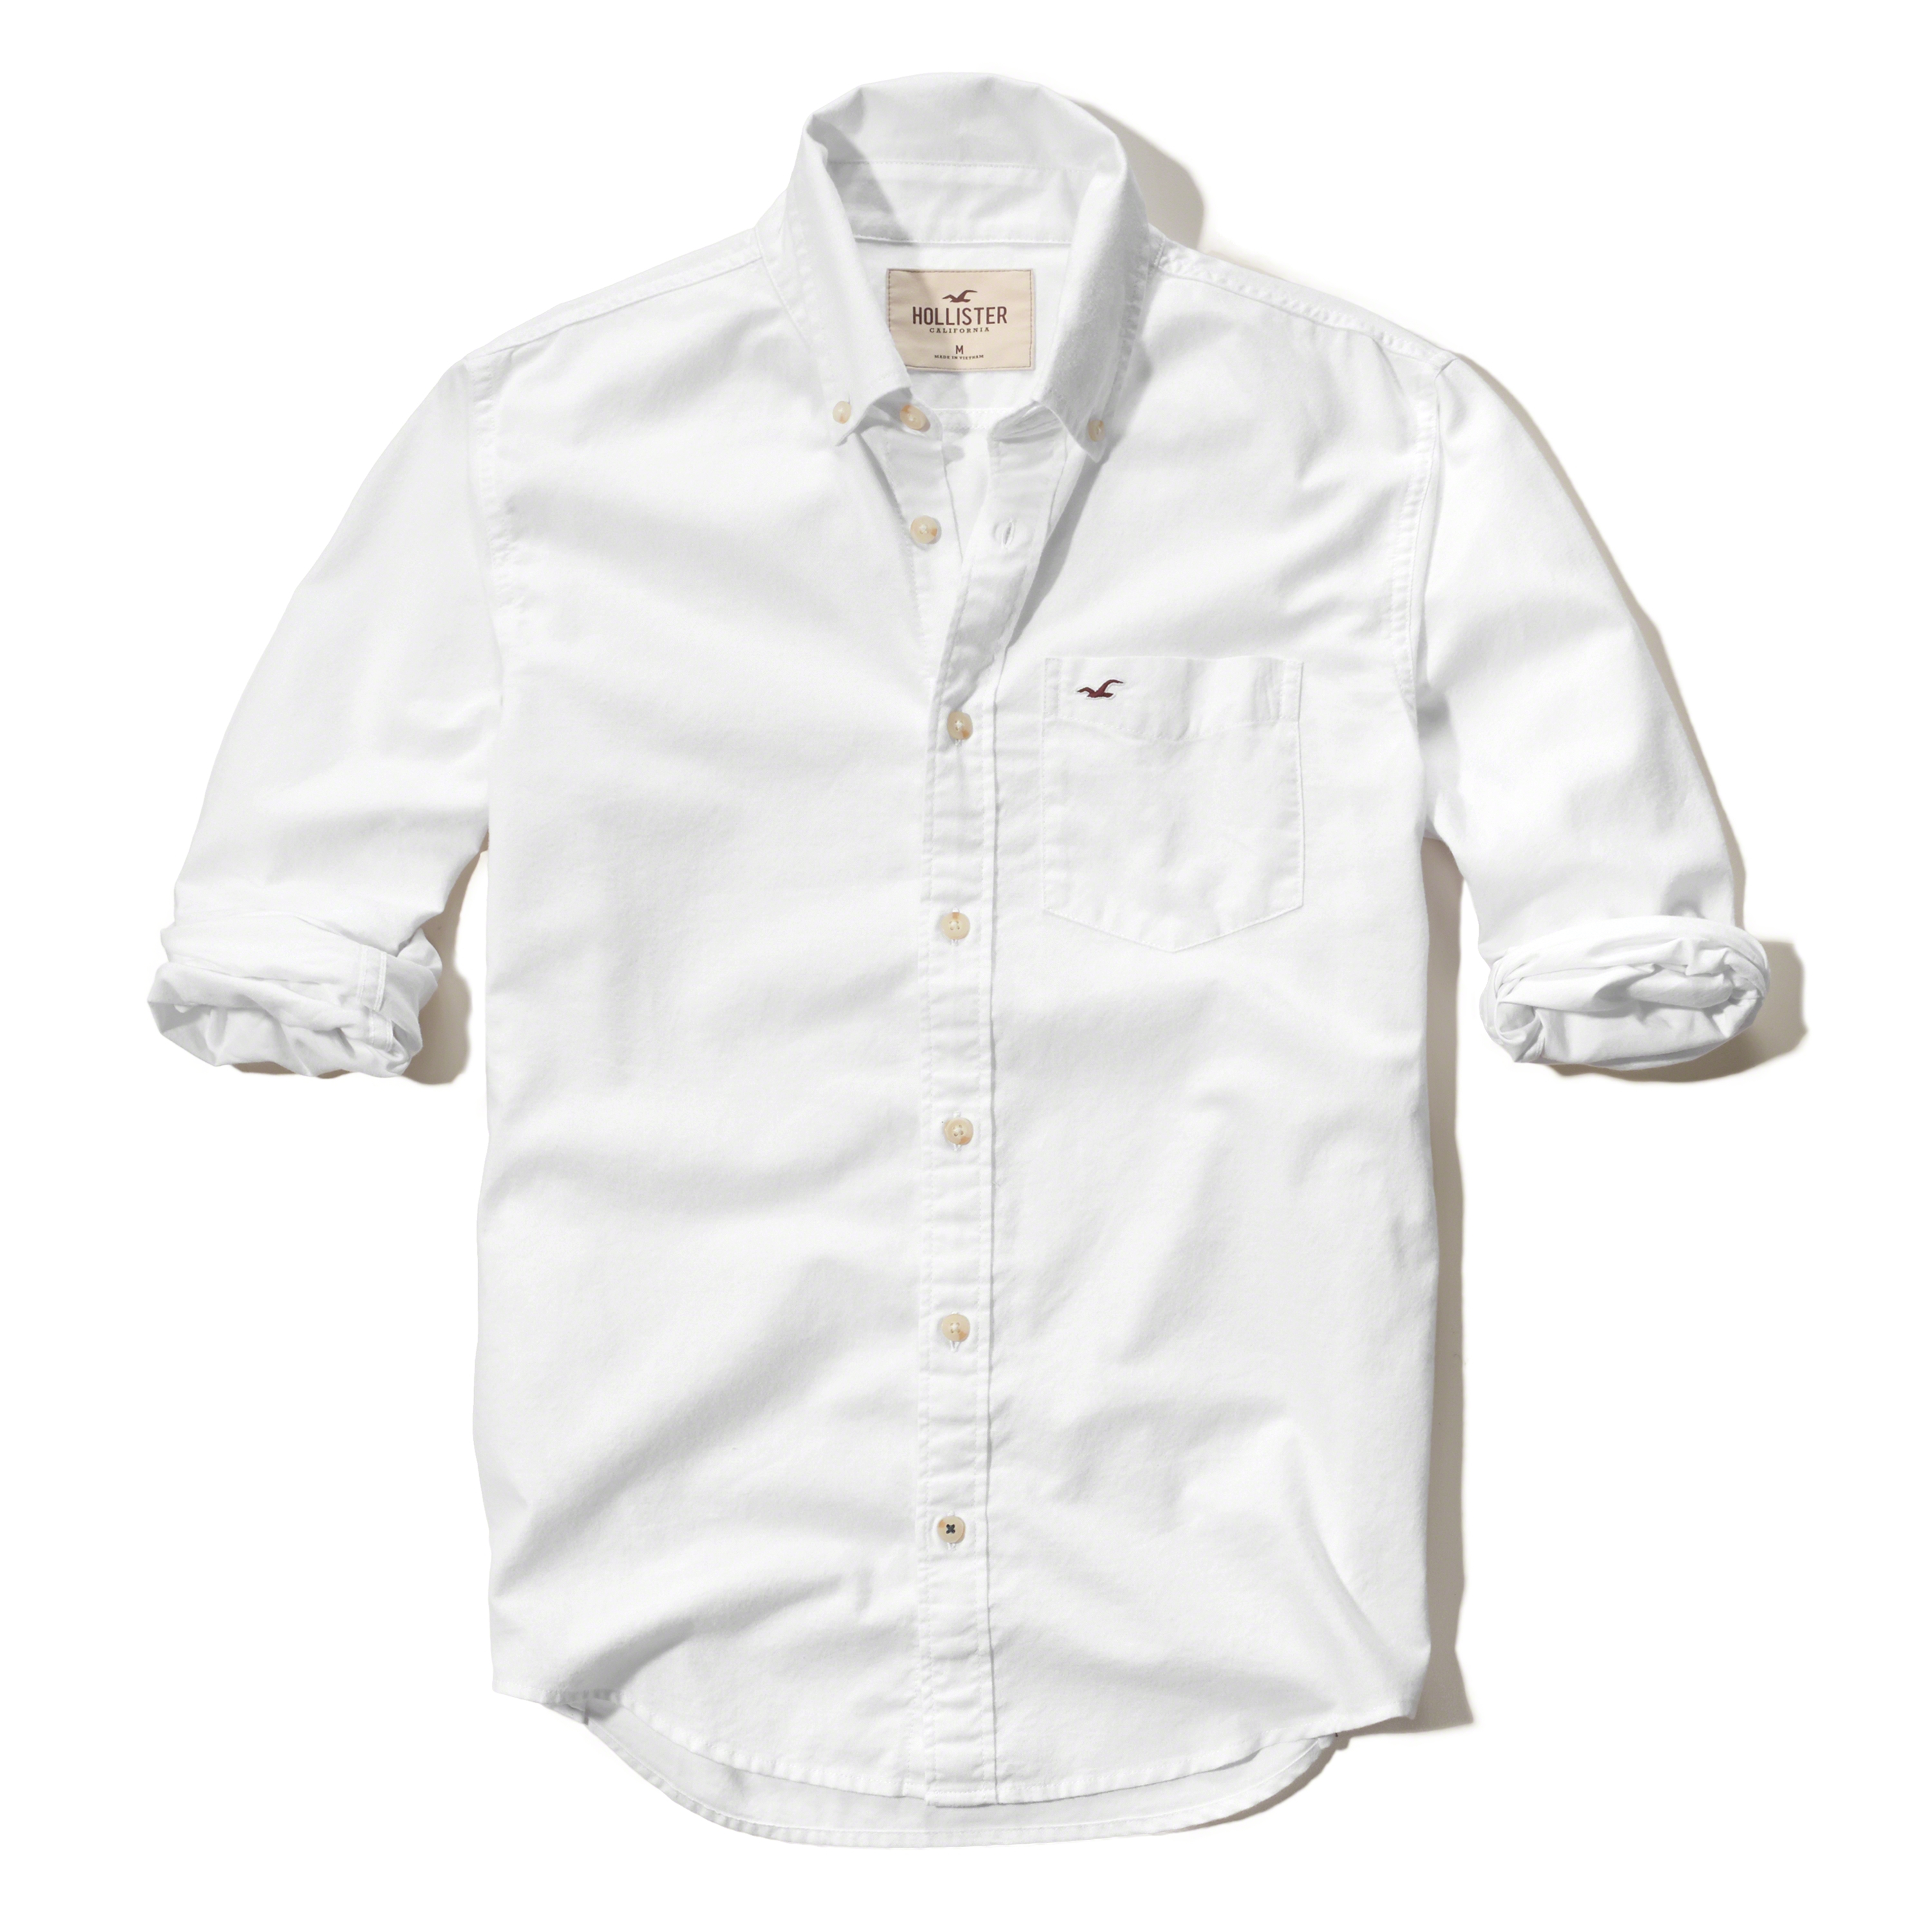 Hollister solid oxford shirt in white for men lyst for White oxford shirt mens